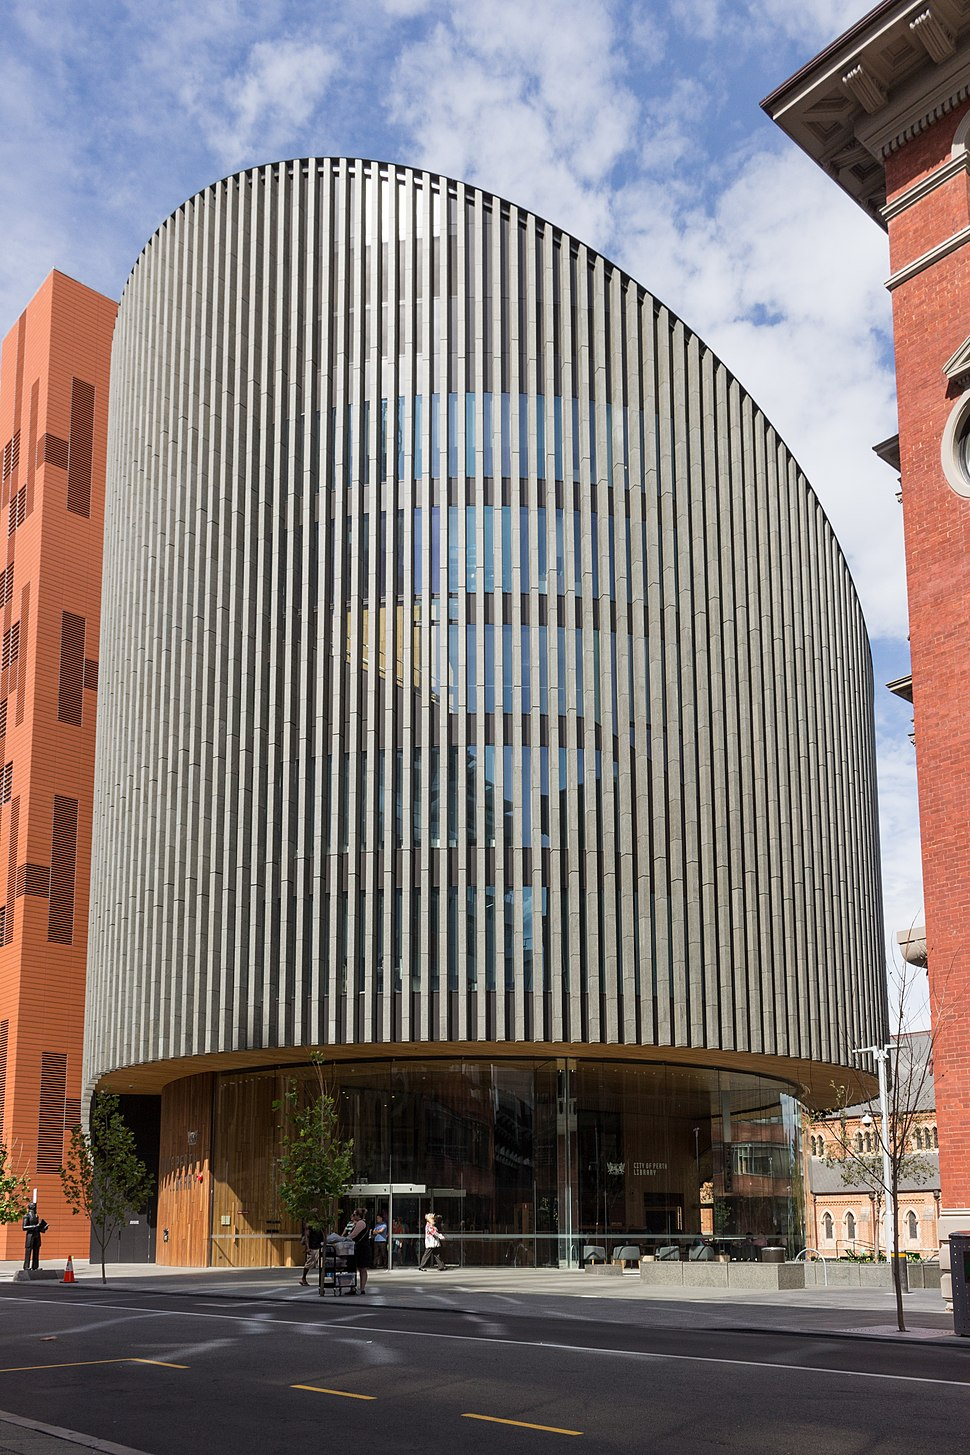 City of Perth Library, April 2016